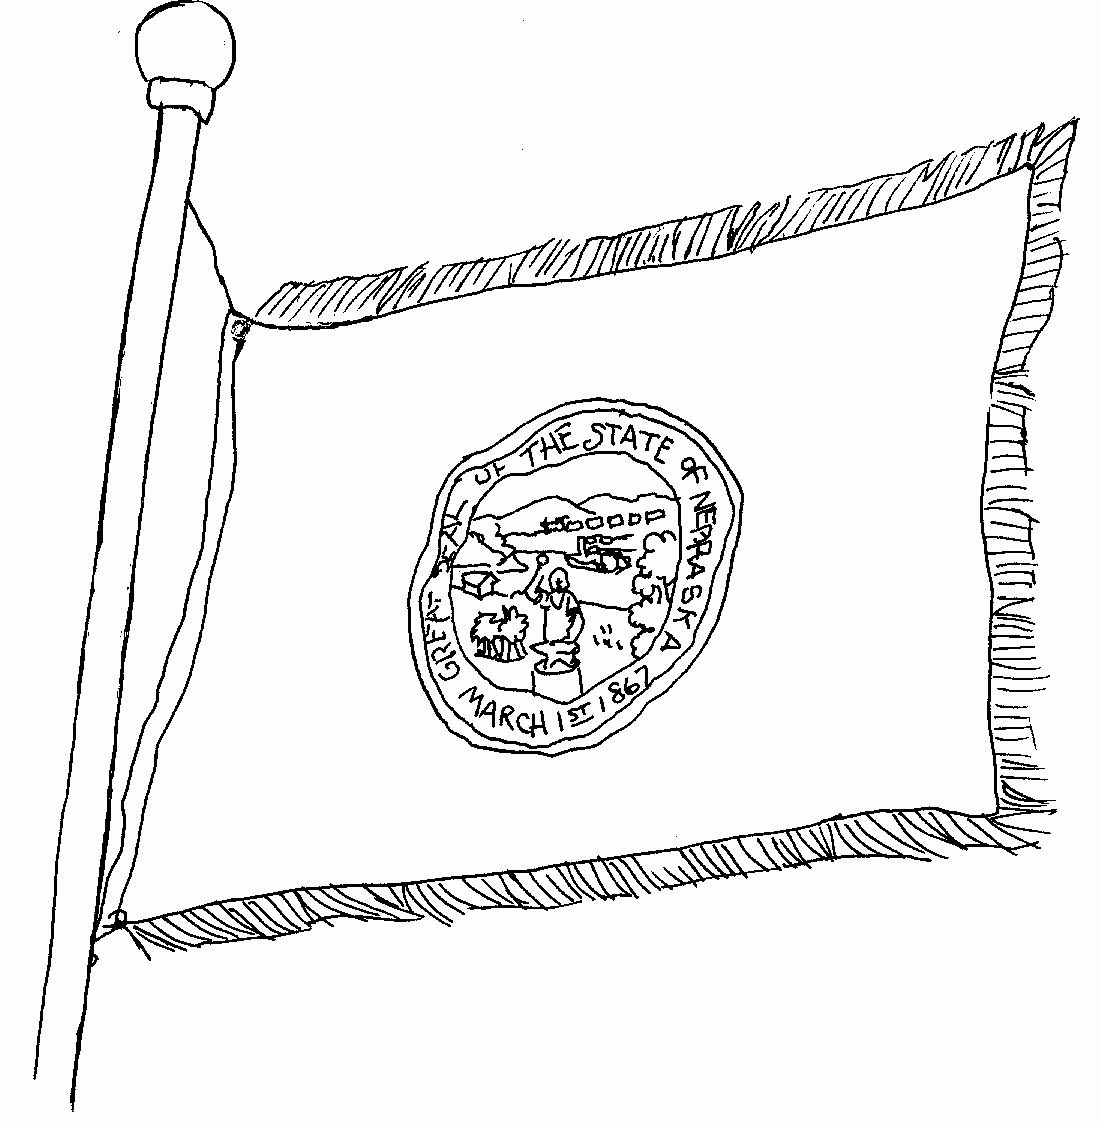 California State Flag Coloring Page Luxury Coloring Flag Coloring Pages Coloring Pages State Flags